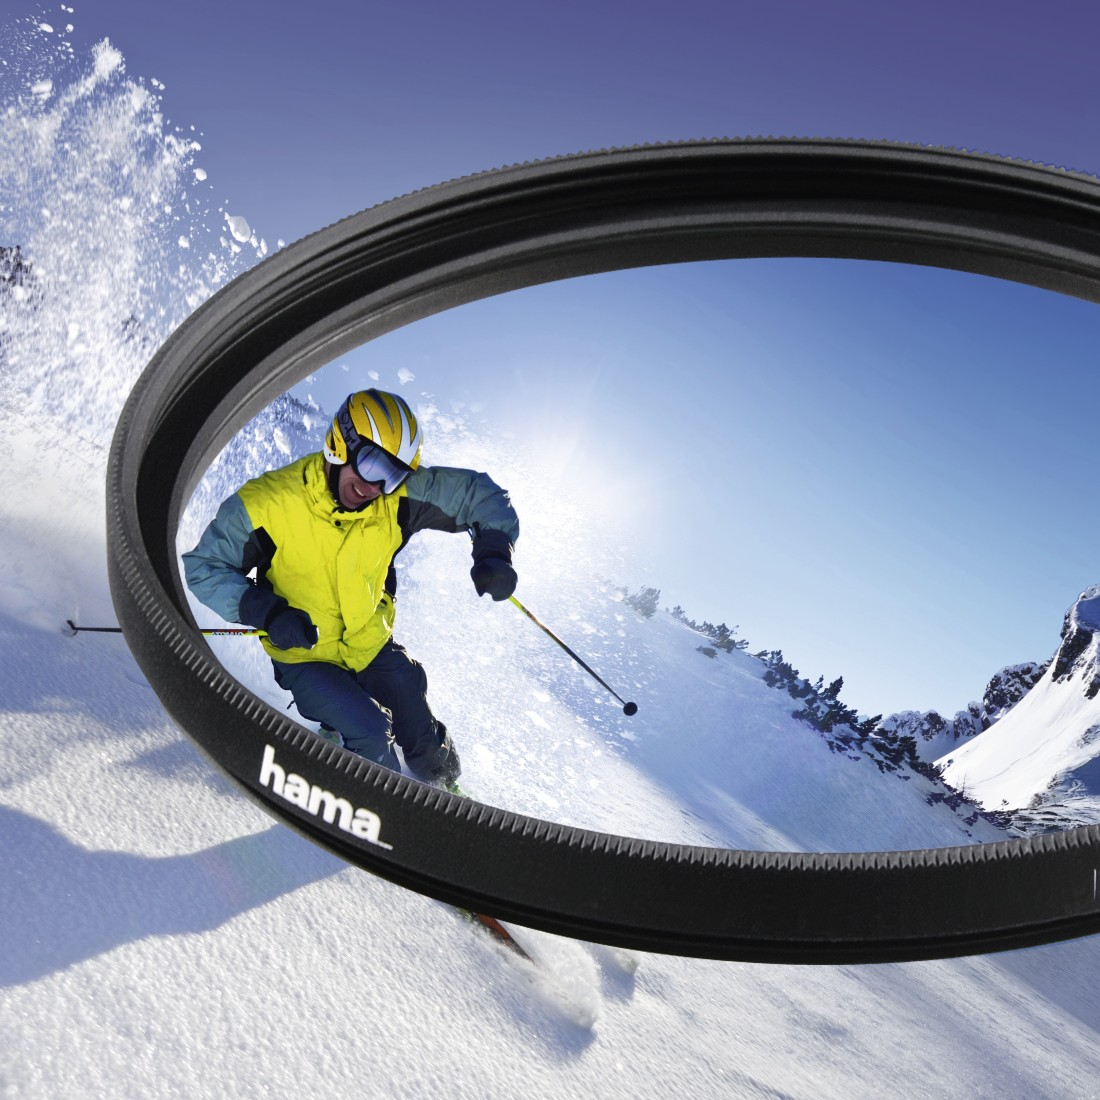 awx2 High-Res Appliance 2 - Hama, UV Filter 390, HTMC multi-coated, 82.0 mm